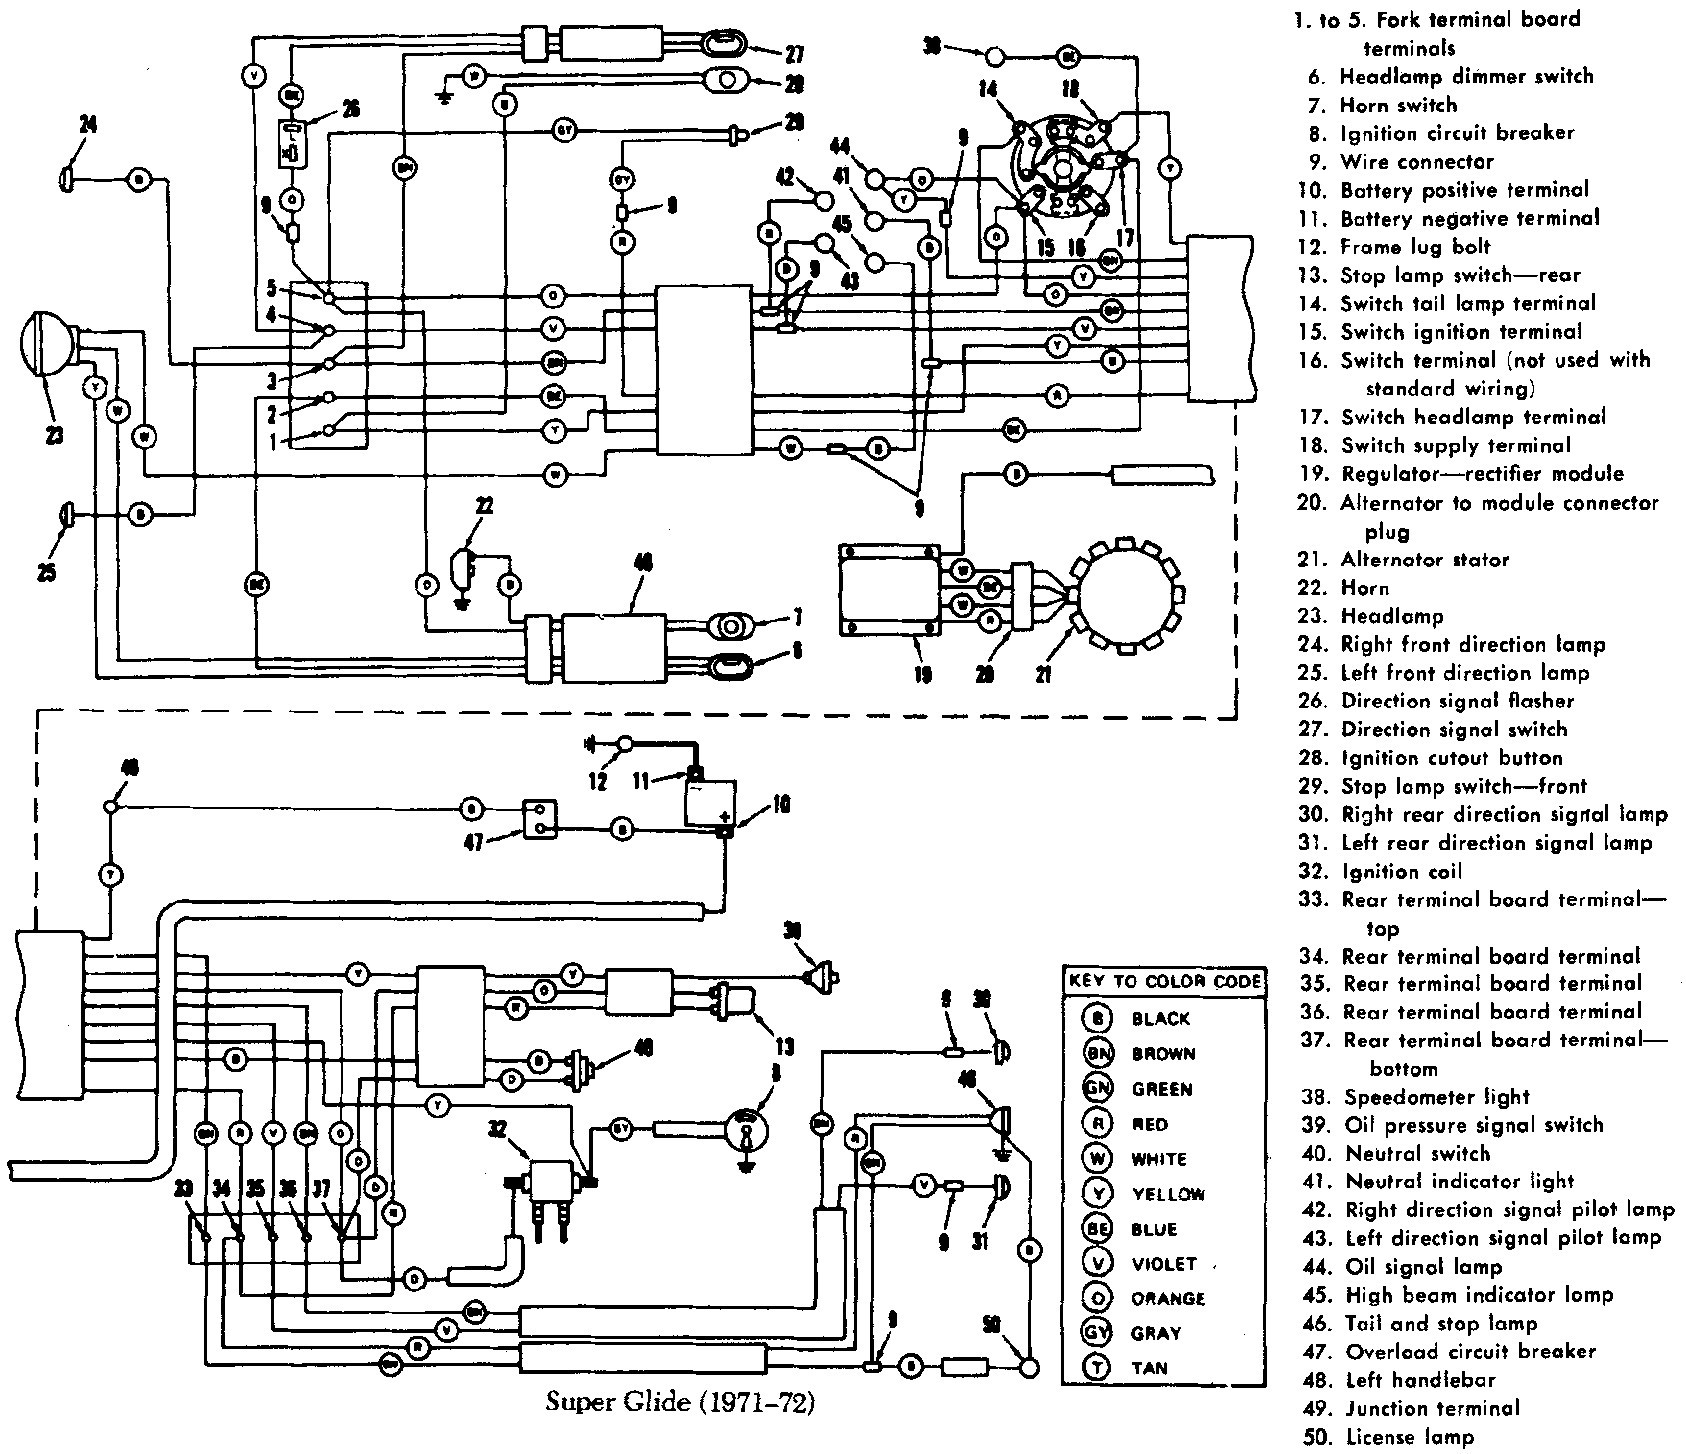 hight resolution of harley accessory plug wiring diagram inspirational wiring diagram harley davidson engine problems gallery of fresh harley